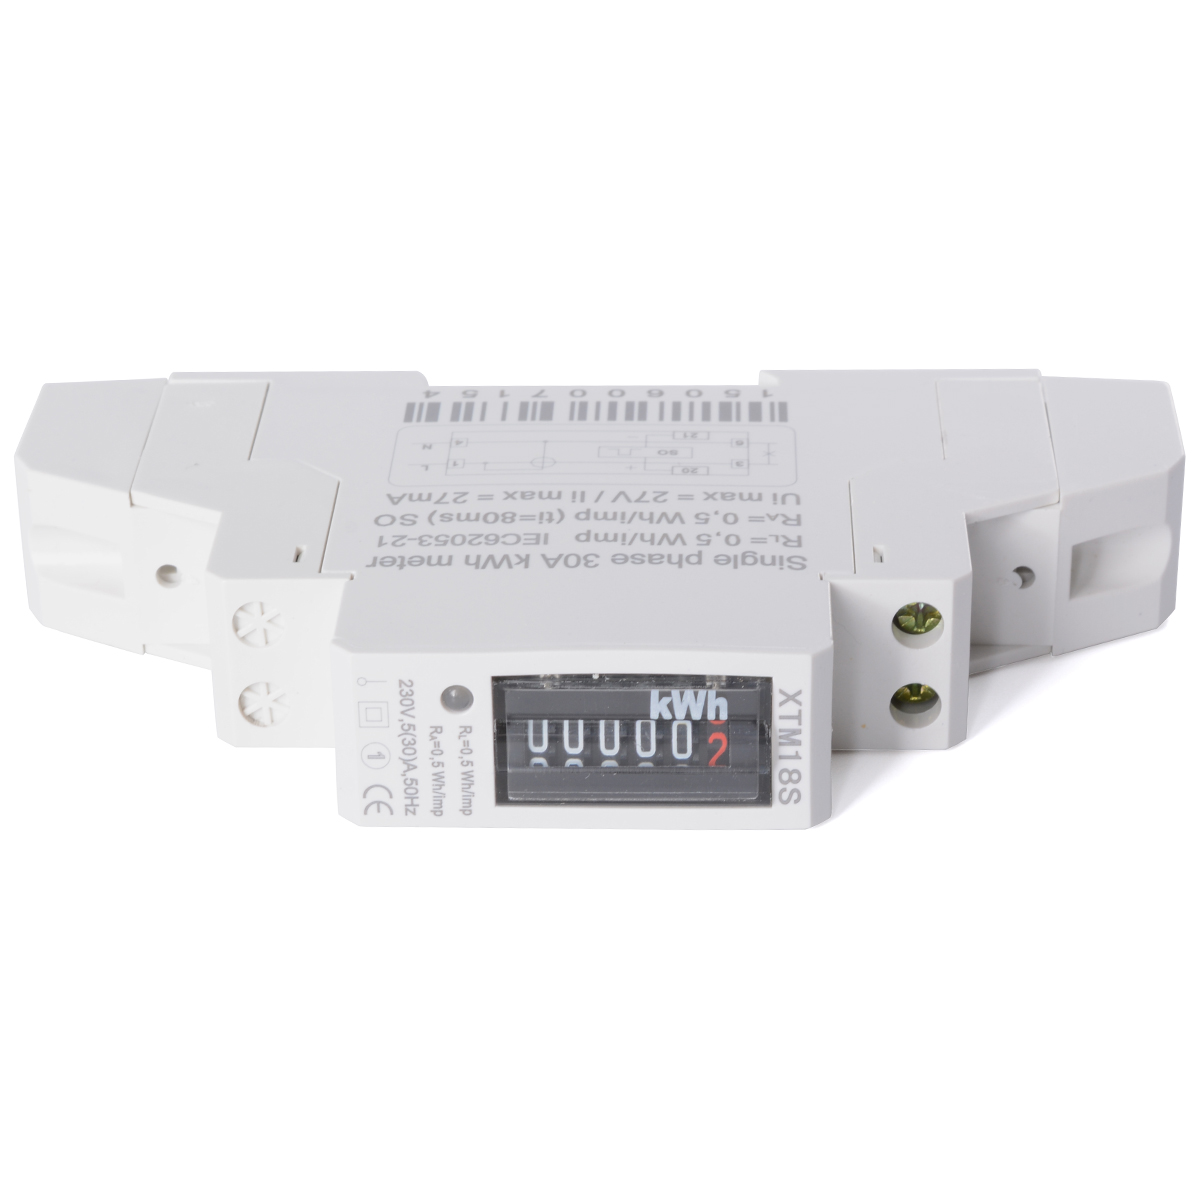 Din Rail Power Meter : Hot hz a kwh meter din rail mounted single phase